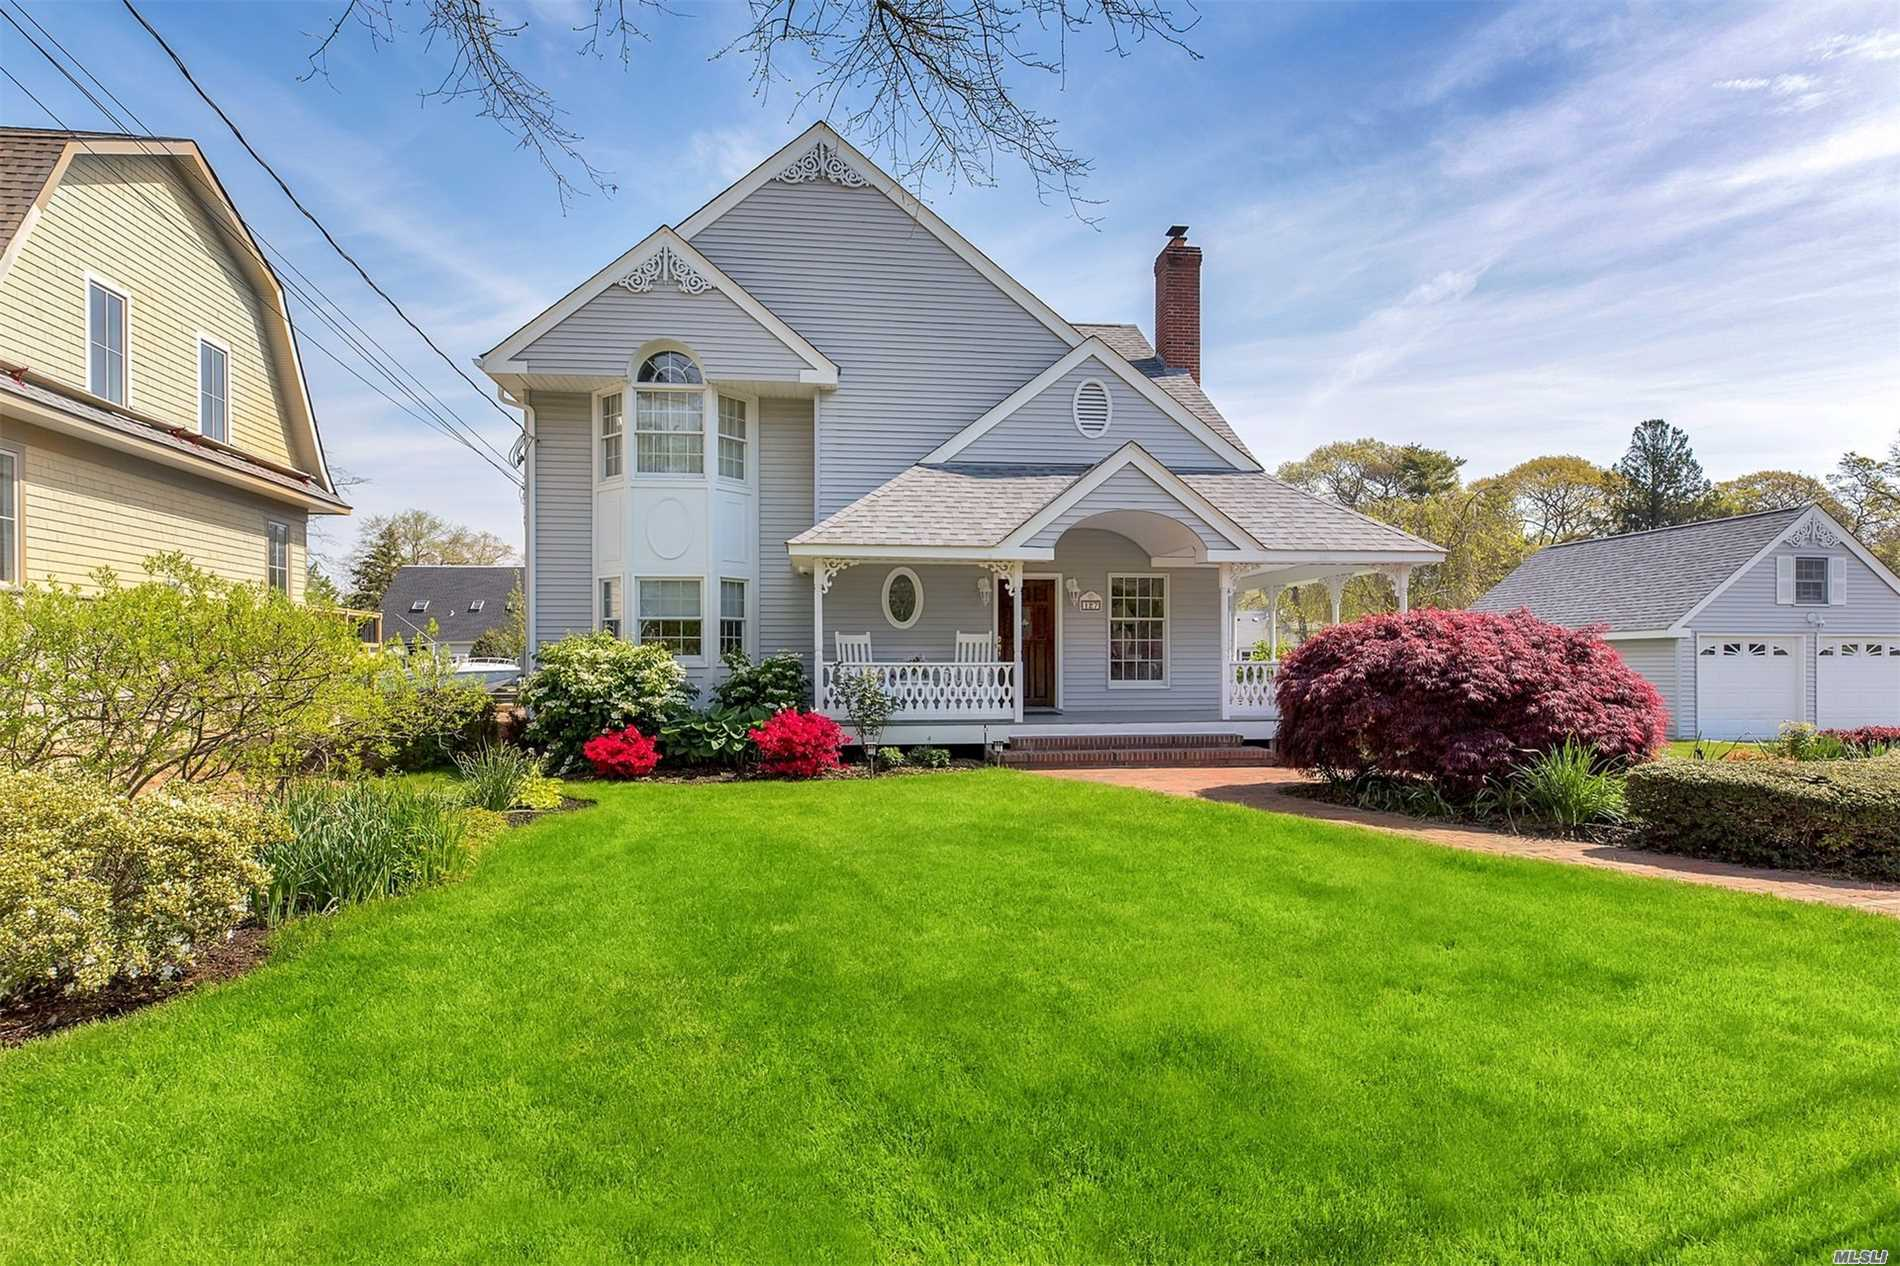 Great Waterfront Location, direct access to Great South Bay, Built in Boat Slip plus Launching area for small watercraft, 175 ' bulkhead, bi level decking IGS, det 2 car garage with huge overhead storage, Beautifully Landscaped with mature plantings, perrenial and rose gardens.